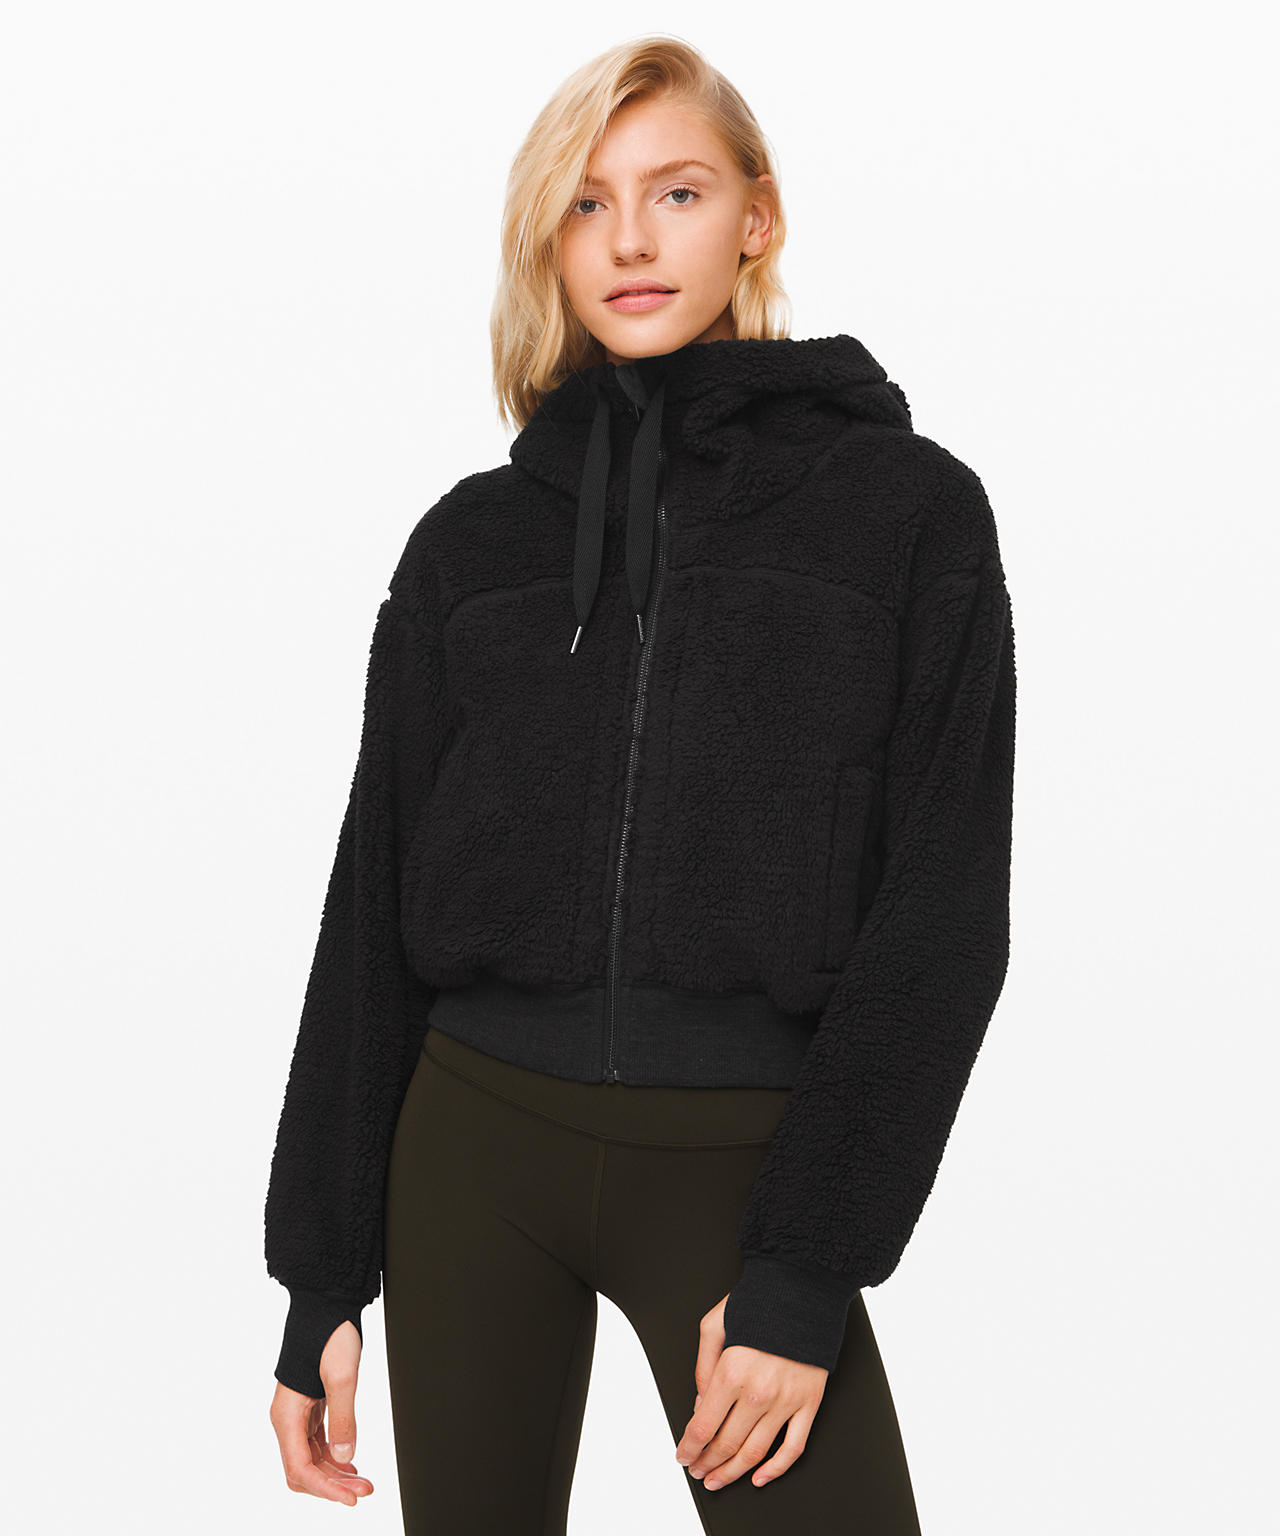 Short Sweet and Sherpa Jacket Black, Lululemon Upload